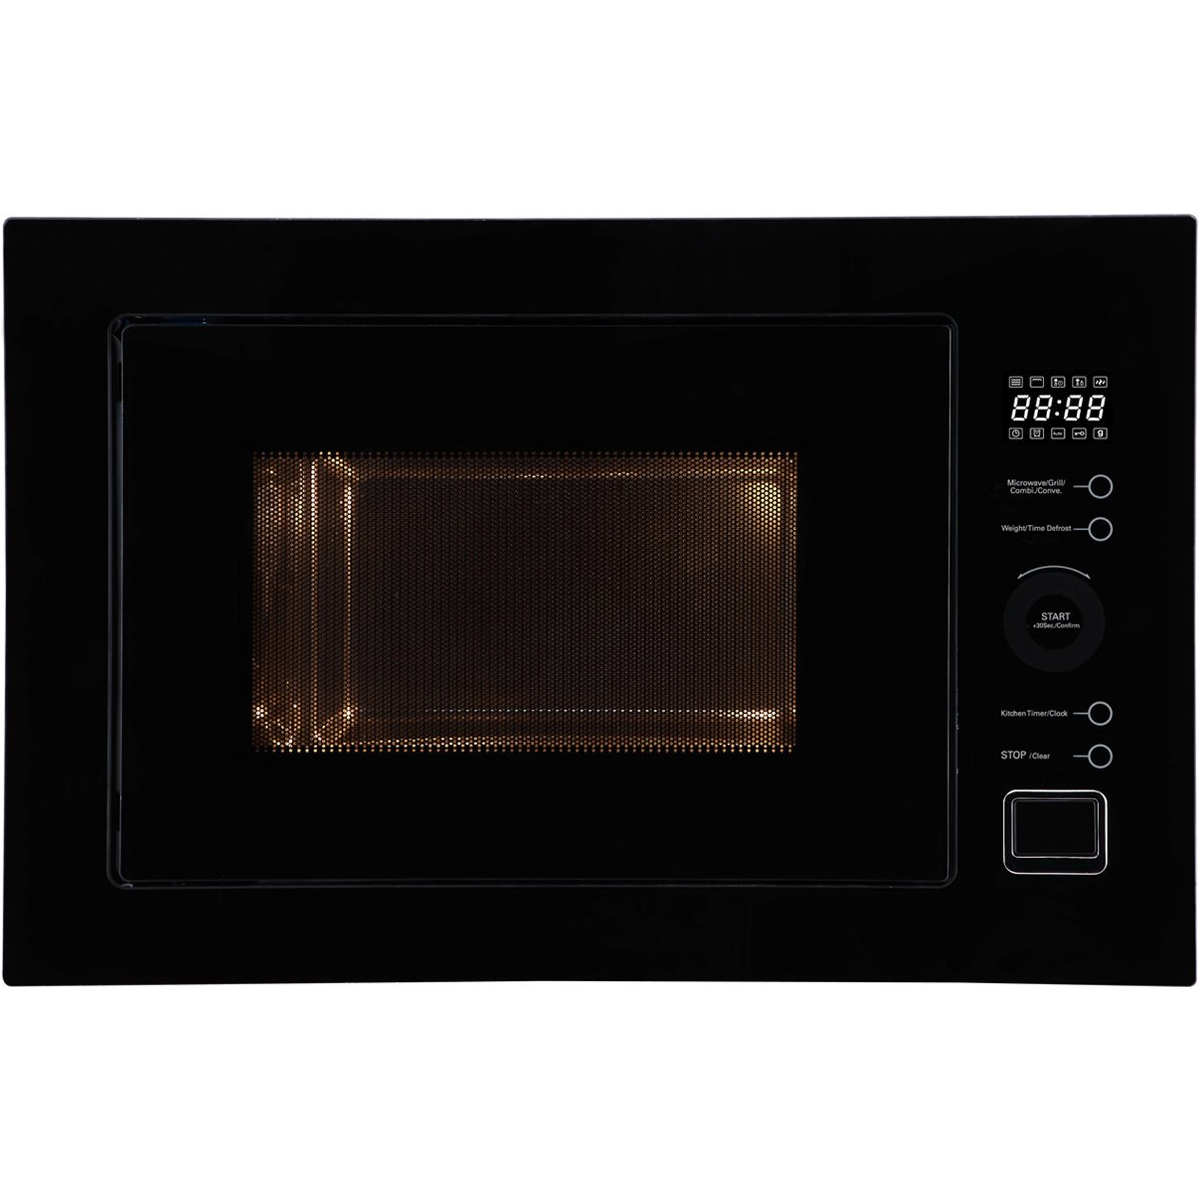 Esatto MC25BF 25L Convection Built-in Microwave Oven 900W